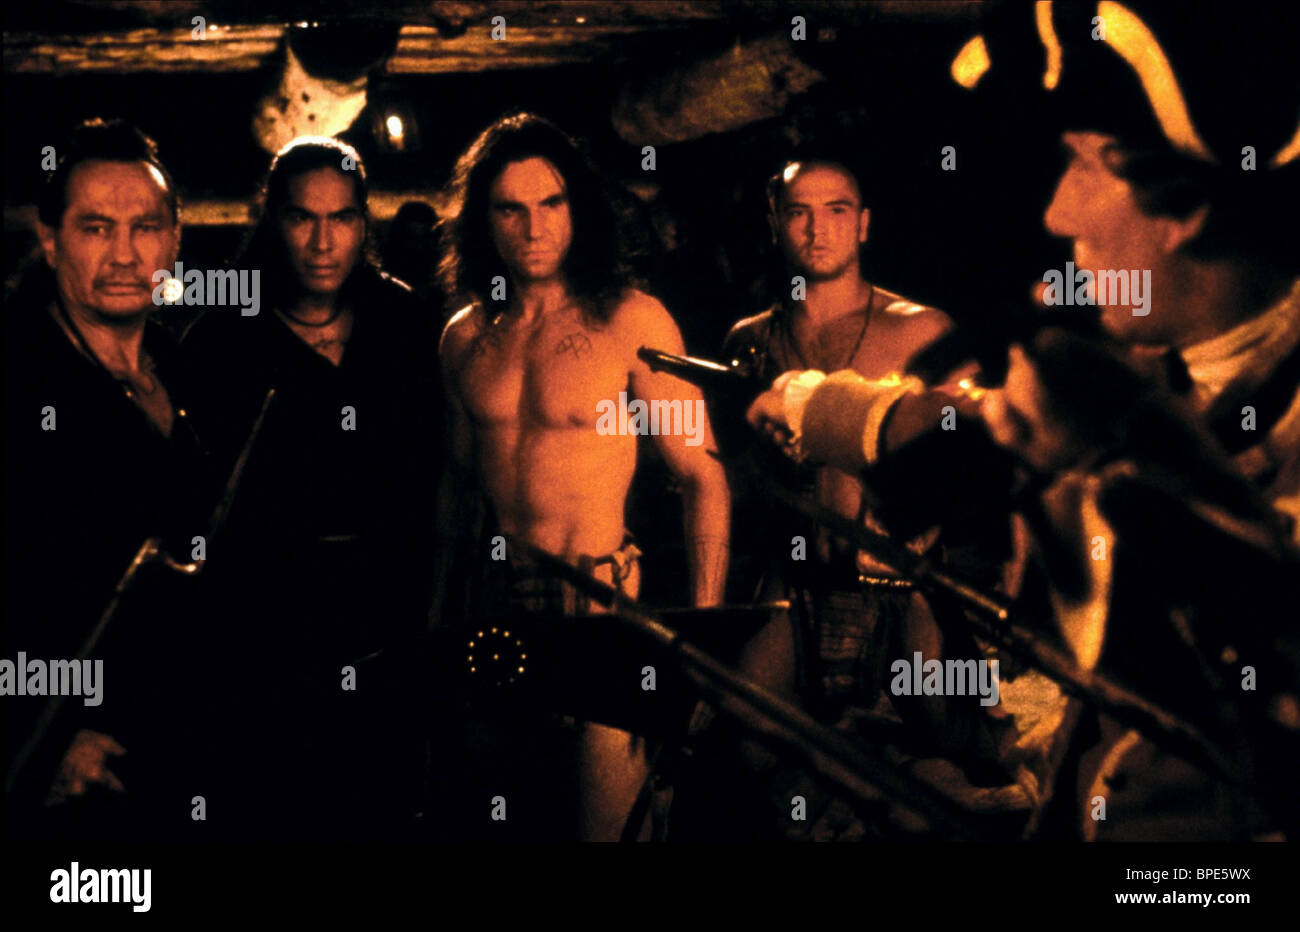 Russell Means Eric Schweig Daniel Day Lewis The Last Of The Mohicans Stock Photo Alamy Jodhi may in the last of the mohicans. https www alamy com stock photo russell means eric schweig daniel day lewis the last of the mohicans 31044774 html